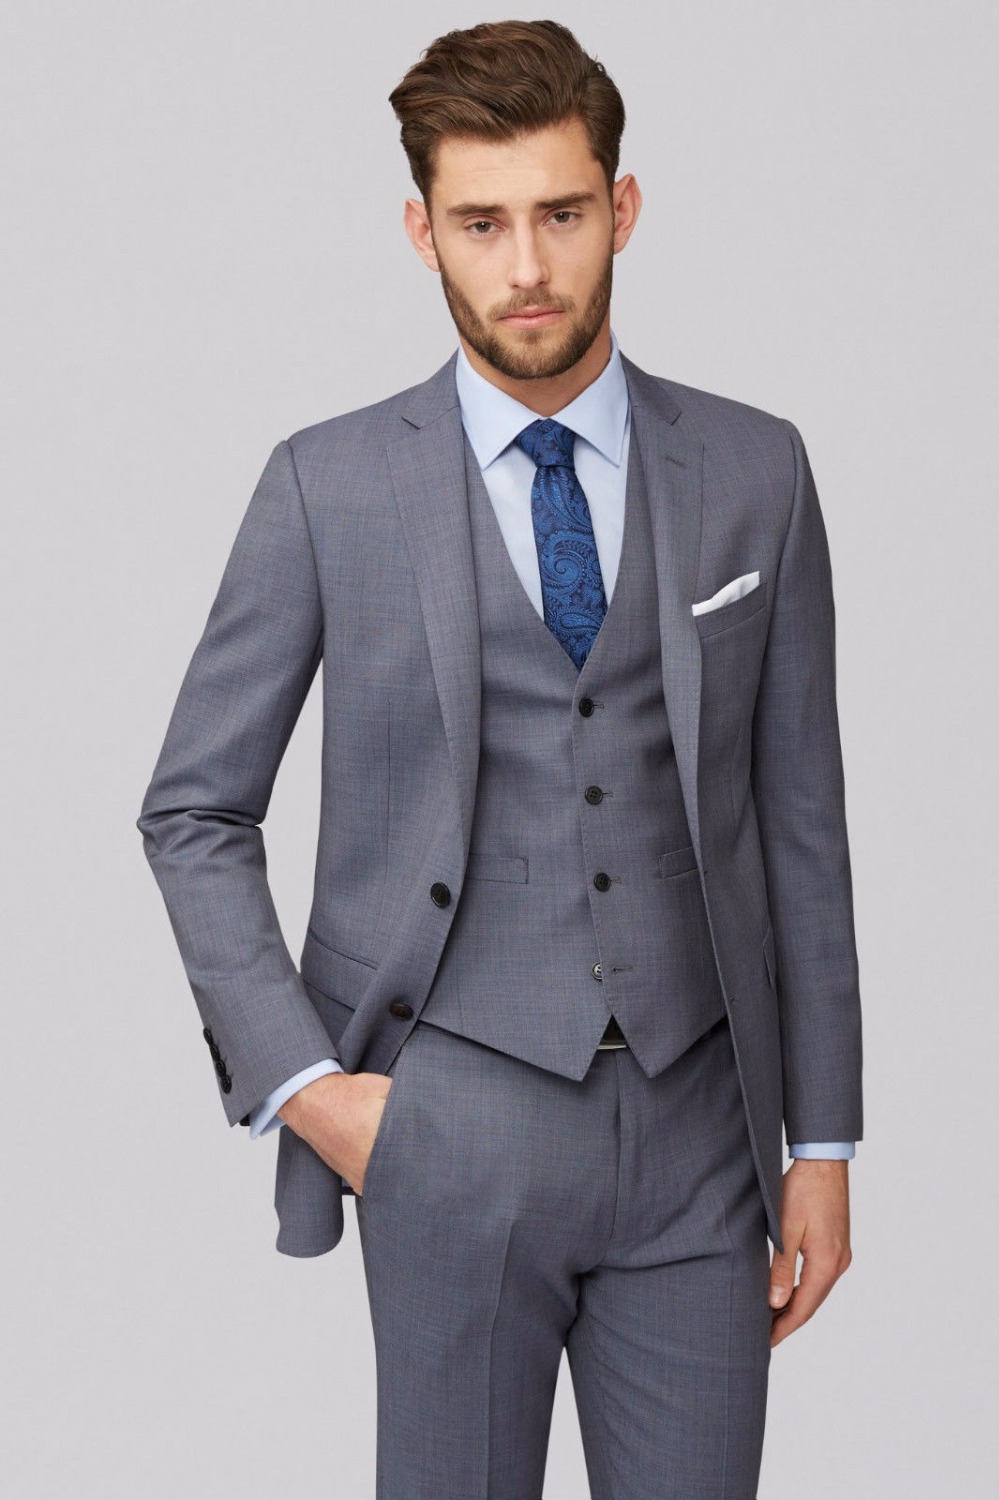 2018 New Blazer suit Mens Grey 3 Piece Wedding Suits Best ...